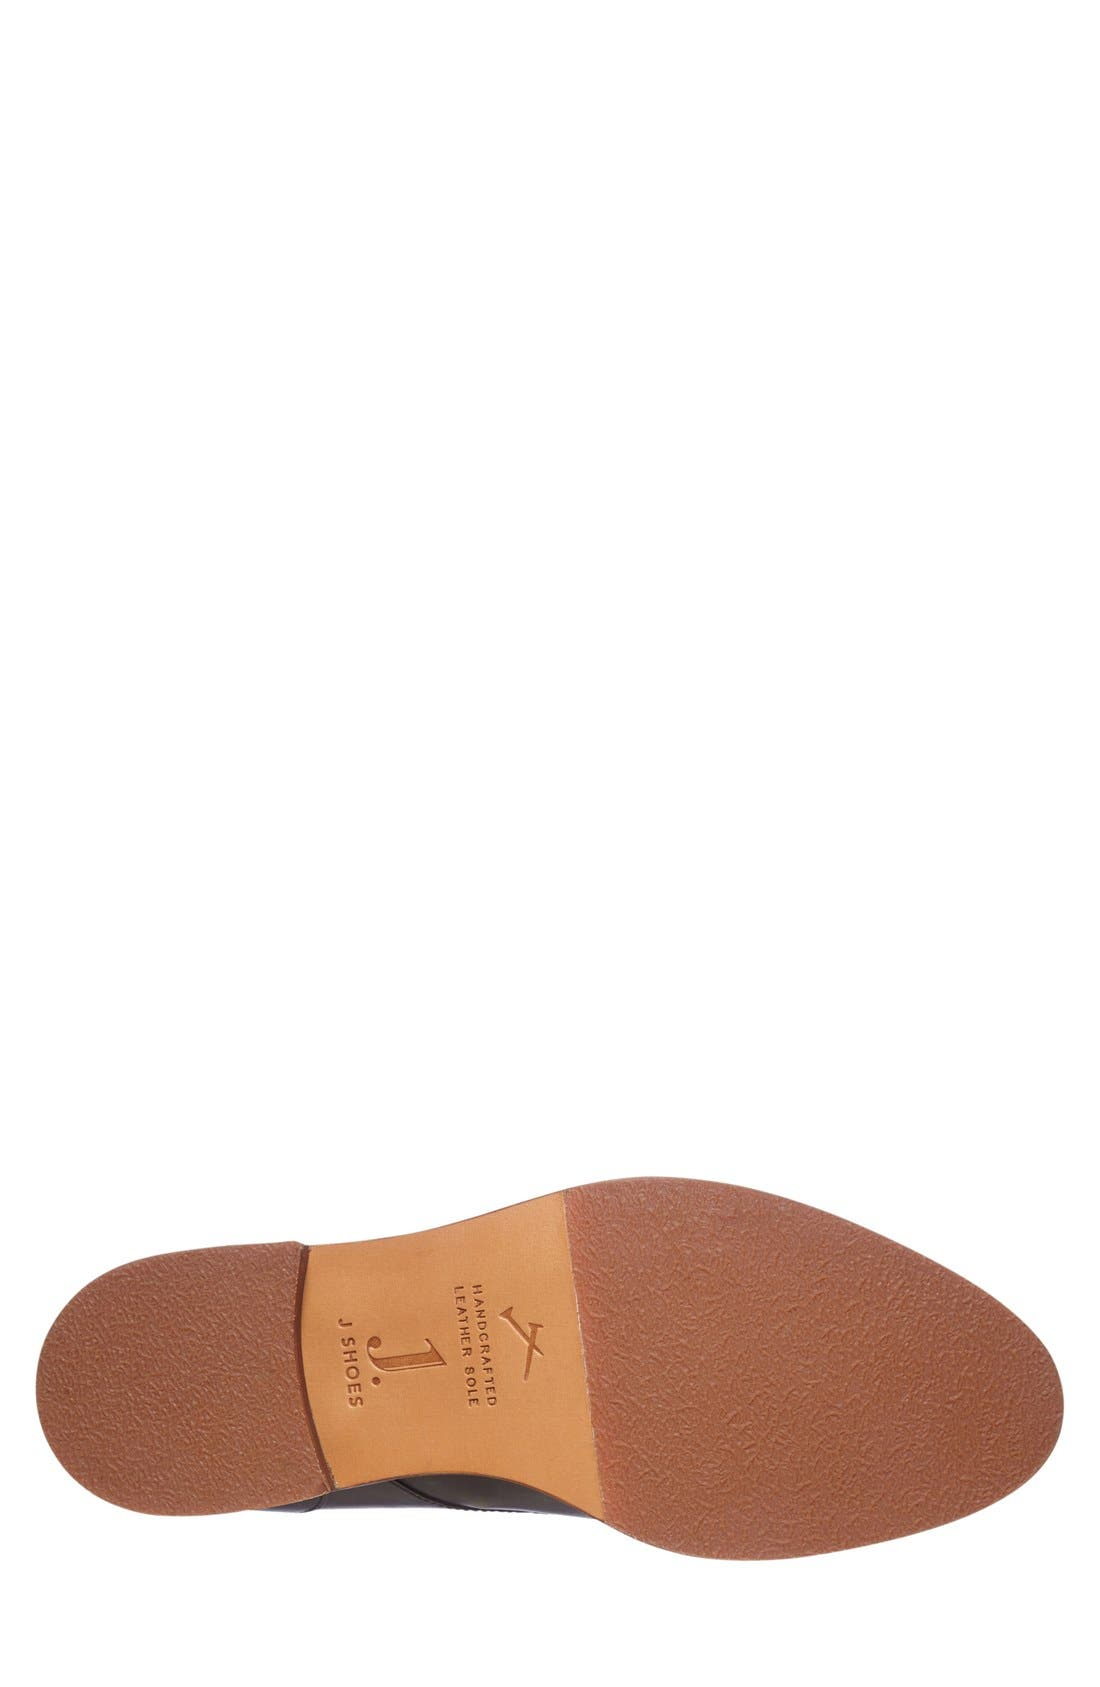 'William Plus' Plain Toe Derby,                             Alternate thumbnail 4, color,                             019